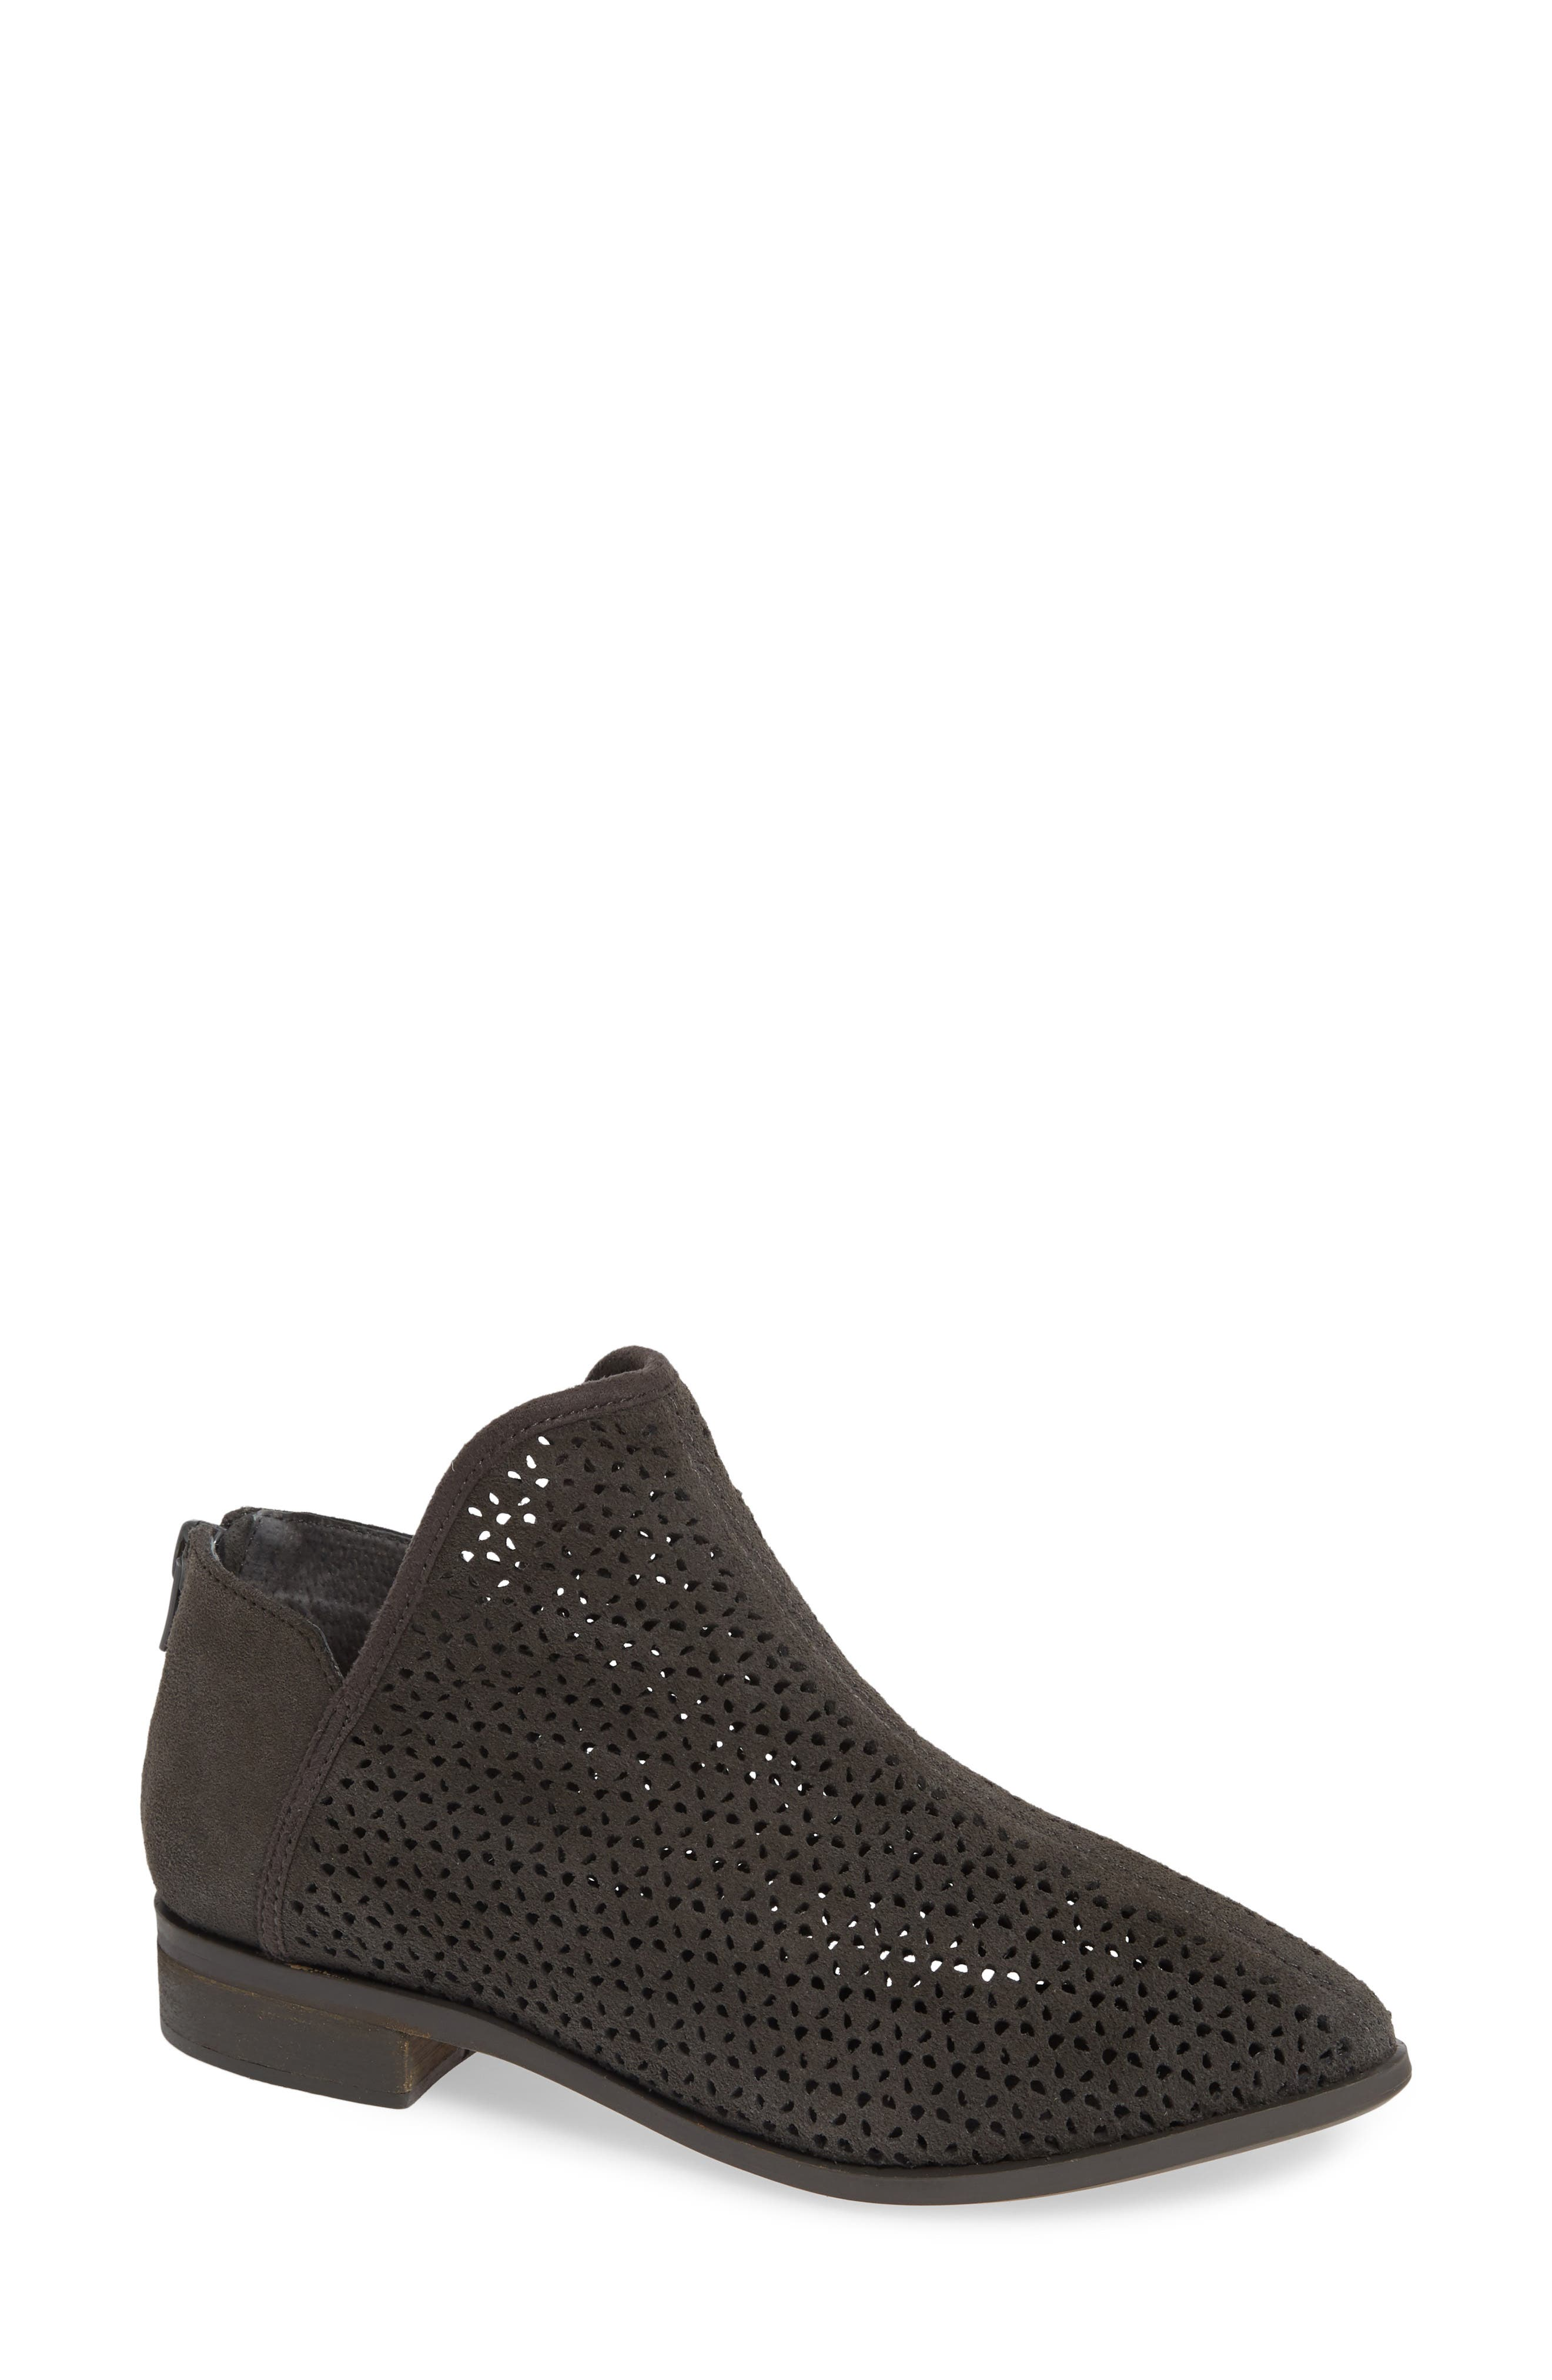 KELSI DAGGER BROOKLYN, Alley Perforated Bootie, Main thumbnail 1, color, CHARCOAL